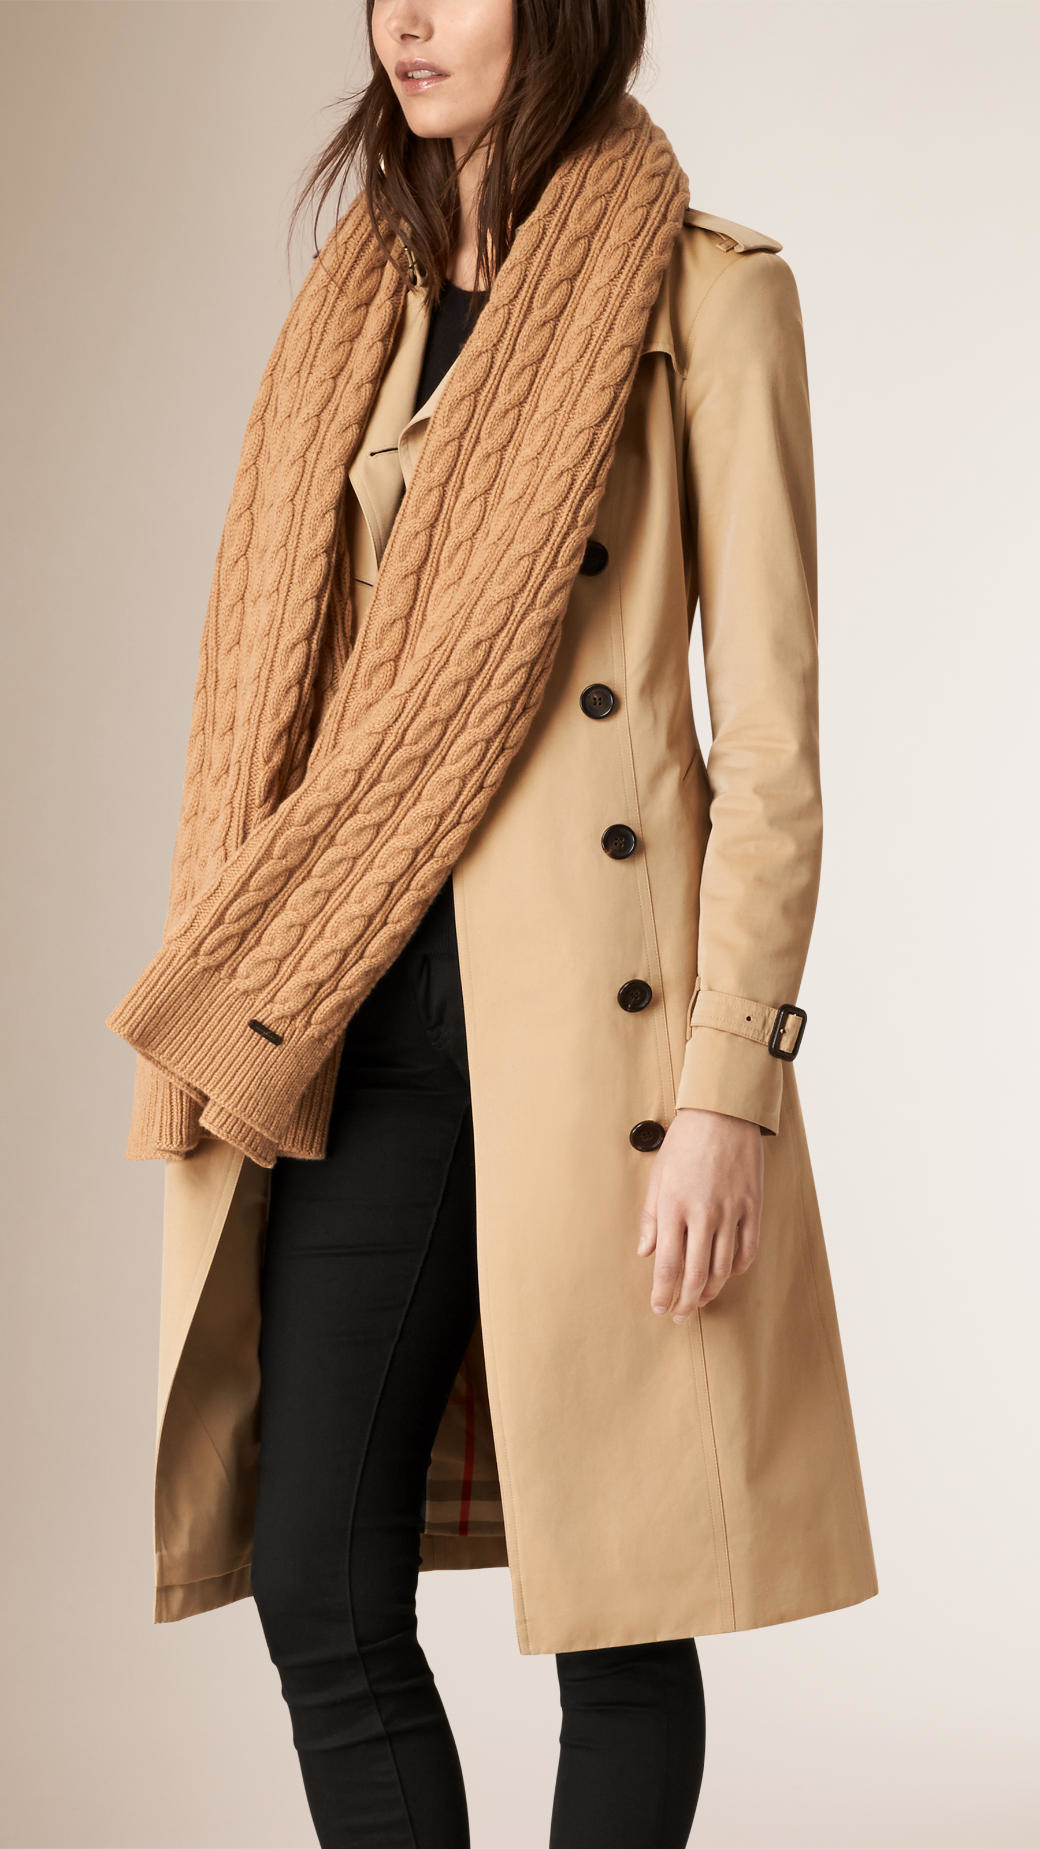 Knitting Pattern Burberry Scarf : Burberry Wool Cashmere Cable Knit Scarf Camel in Natural (CAMEL) Lyst